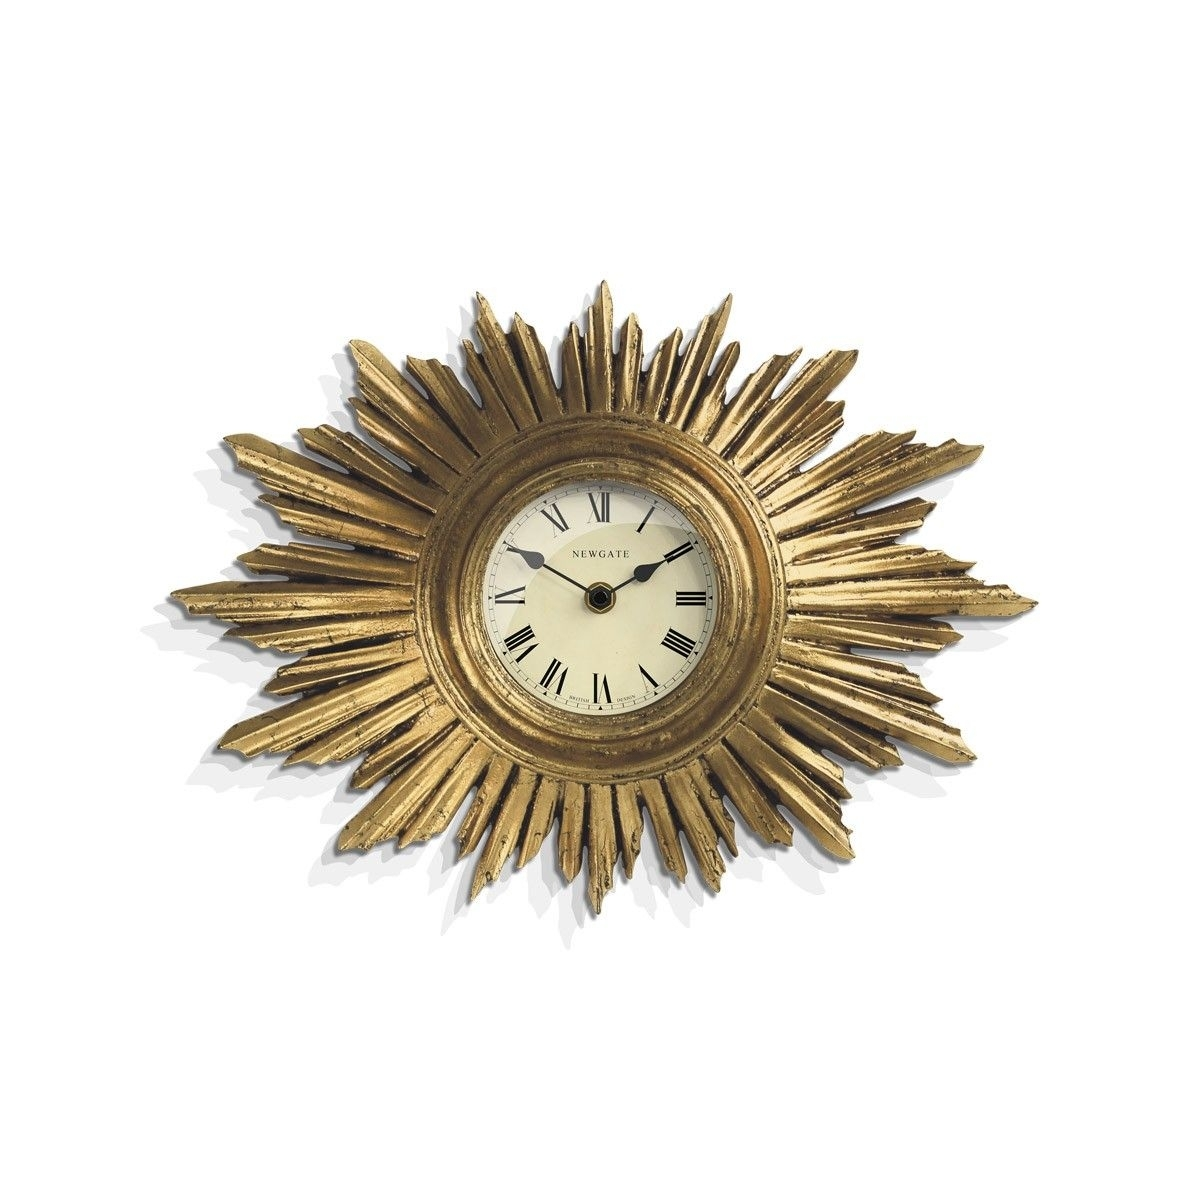 The Sunburst Wall Clock In Vintage Goldnewgate Clocks An Art Regarding Most Recent Art Deco Wall Clock (View 8 of 20)